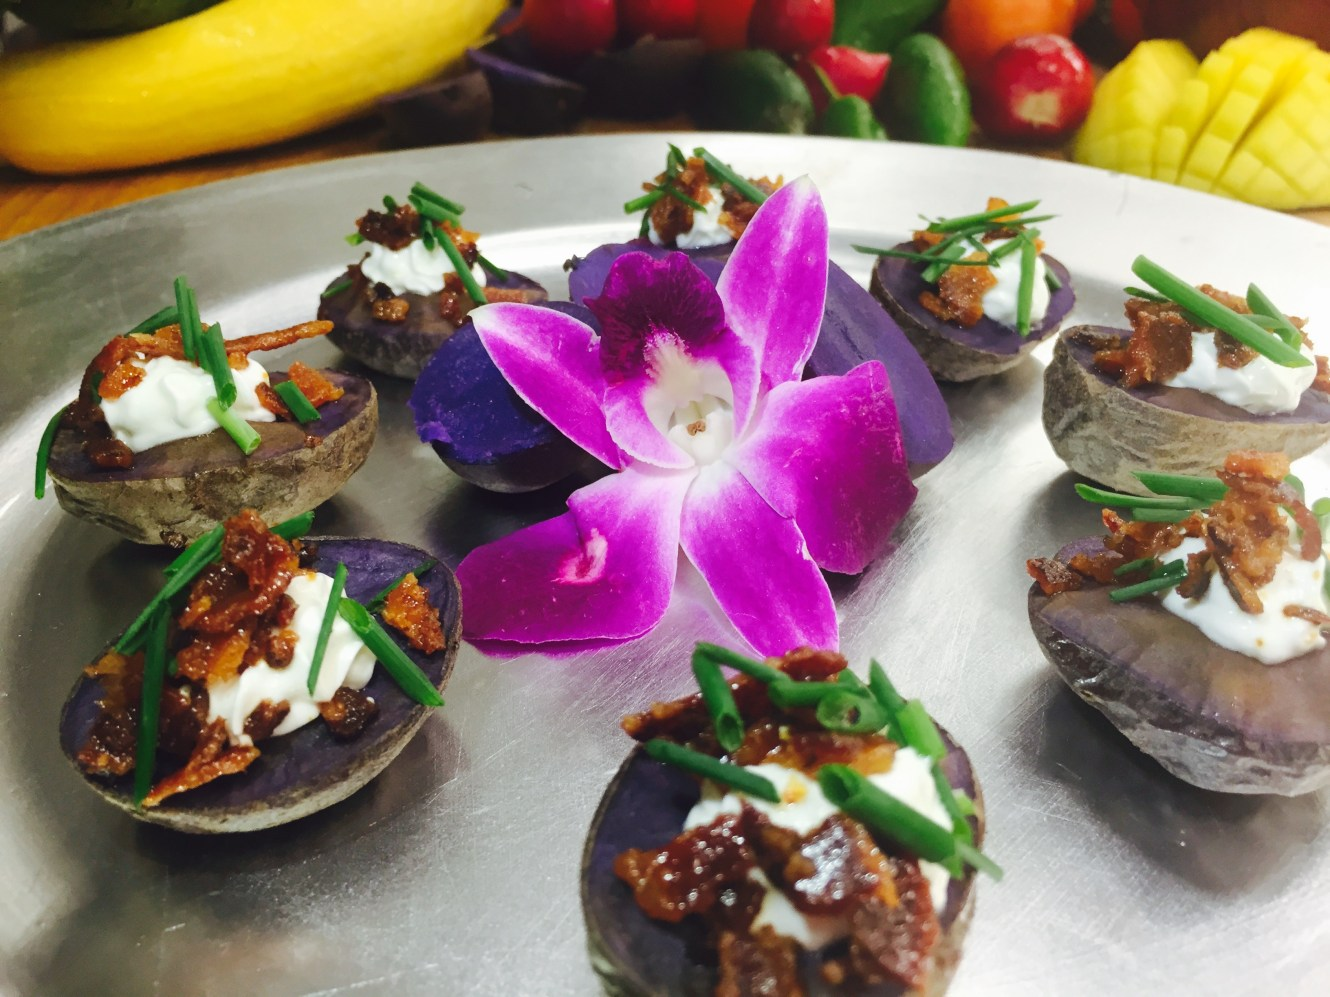 Mini Baked Purple Potatoes with Sour Cream, Bacon and Chives